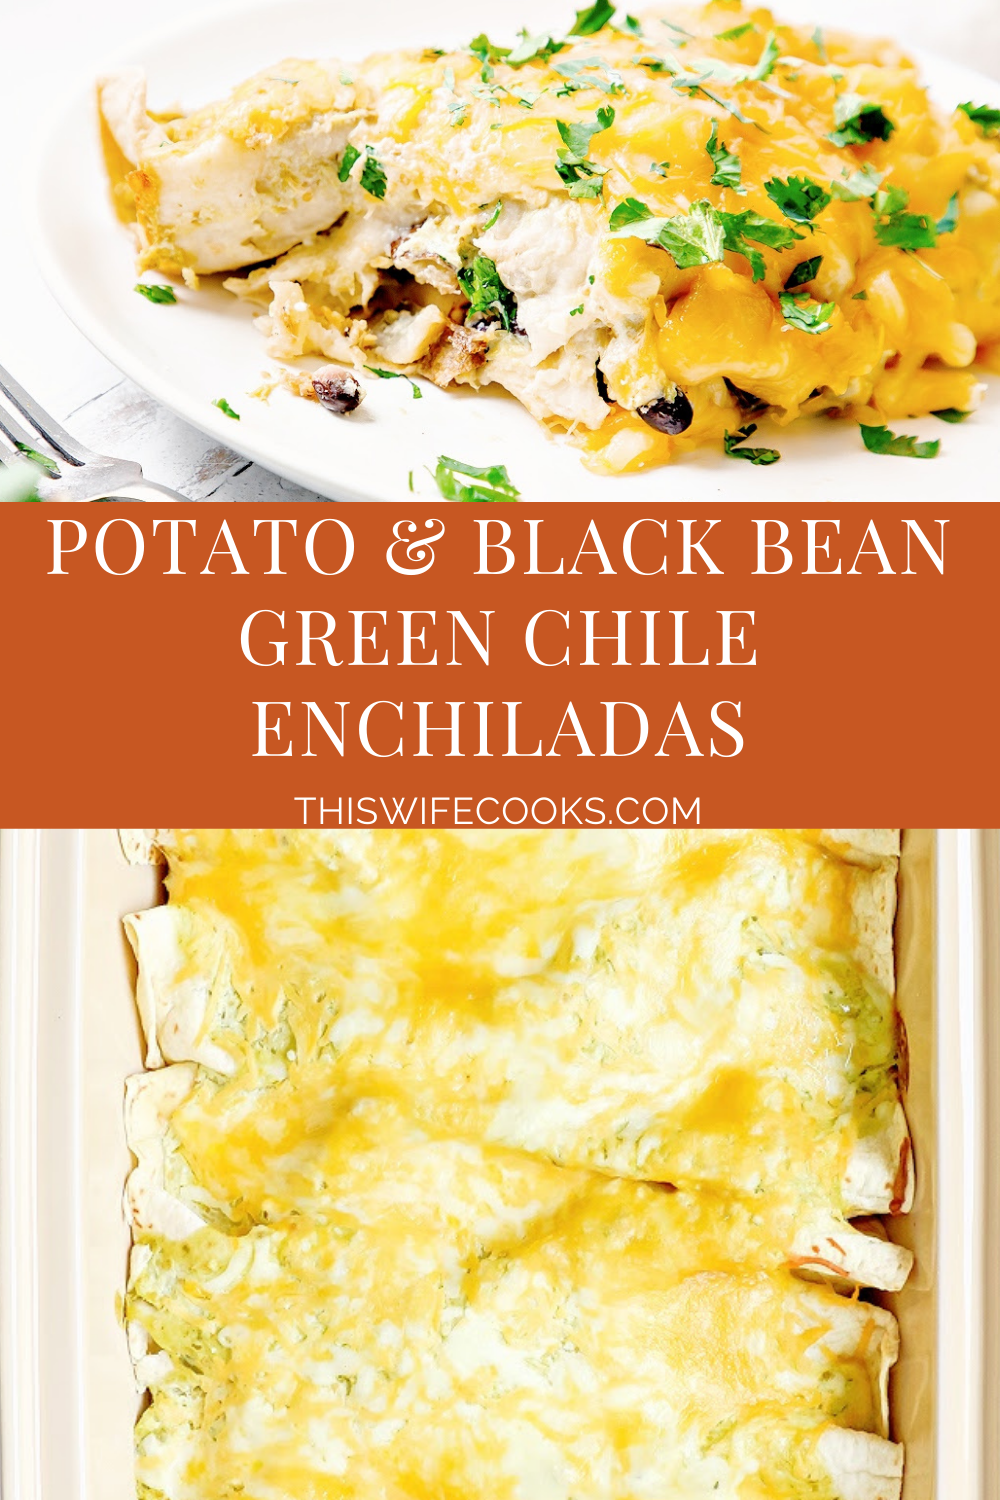 Potato and Black Bean Green Chile Enchiladas are easy to make and budget-friendly. Made with simple ingredients and pantry staples in under an hour.  via @thiswifecooks